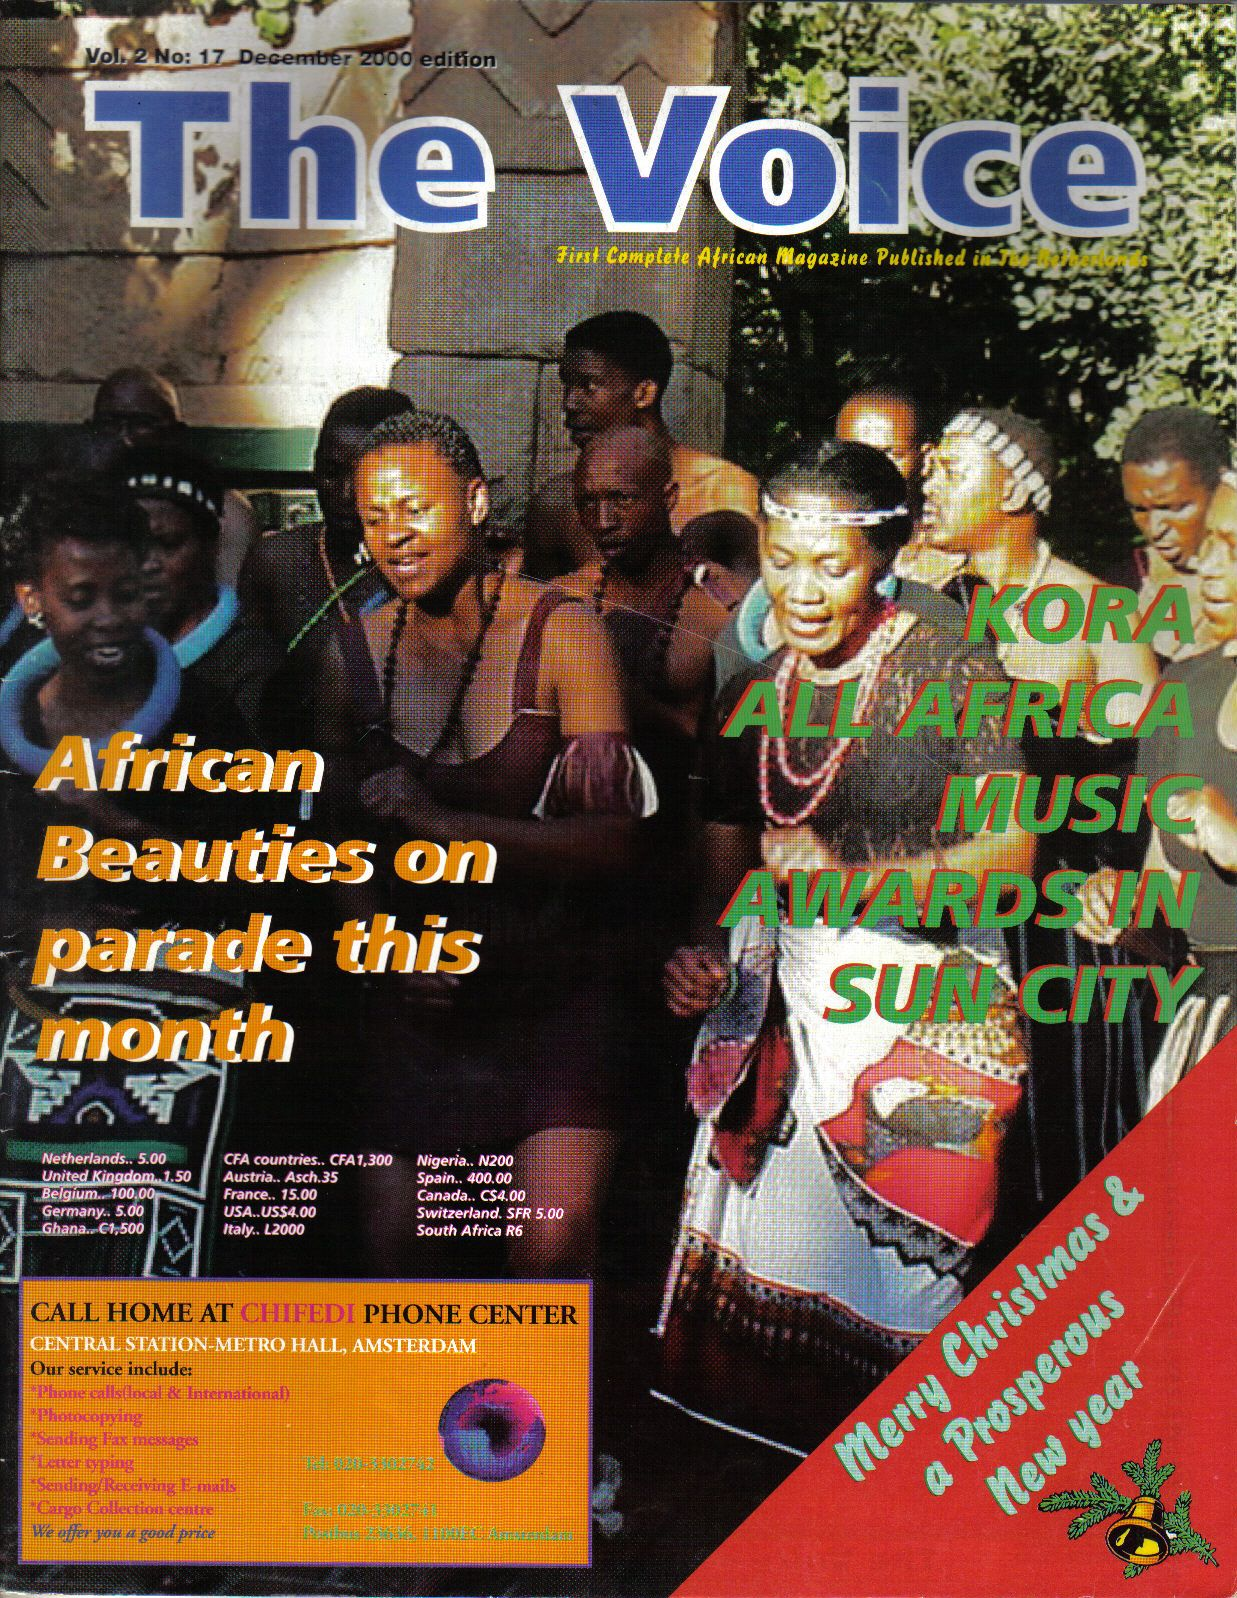 Cover Page for The Voice magazine issue No 17